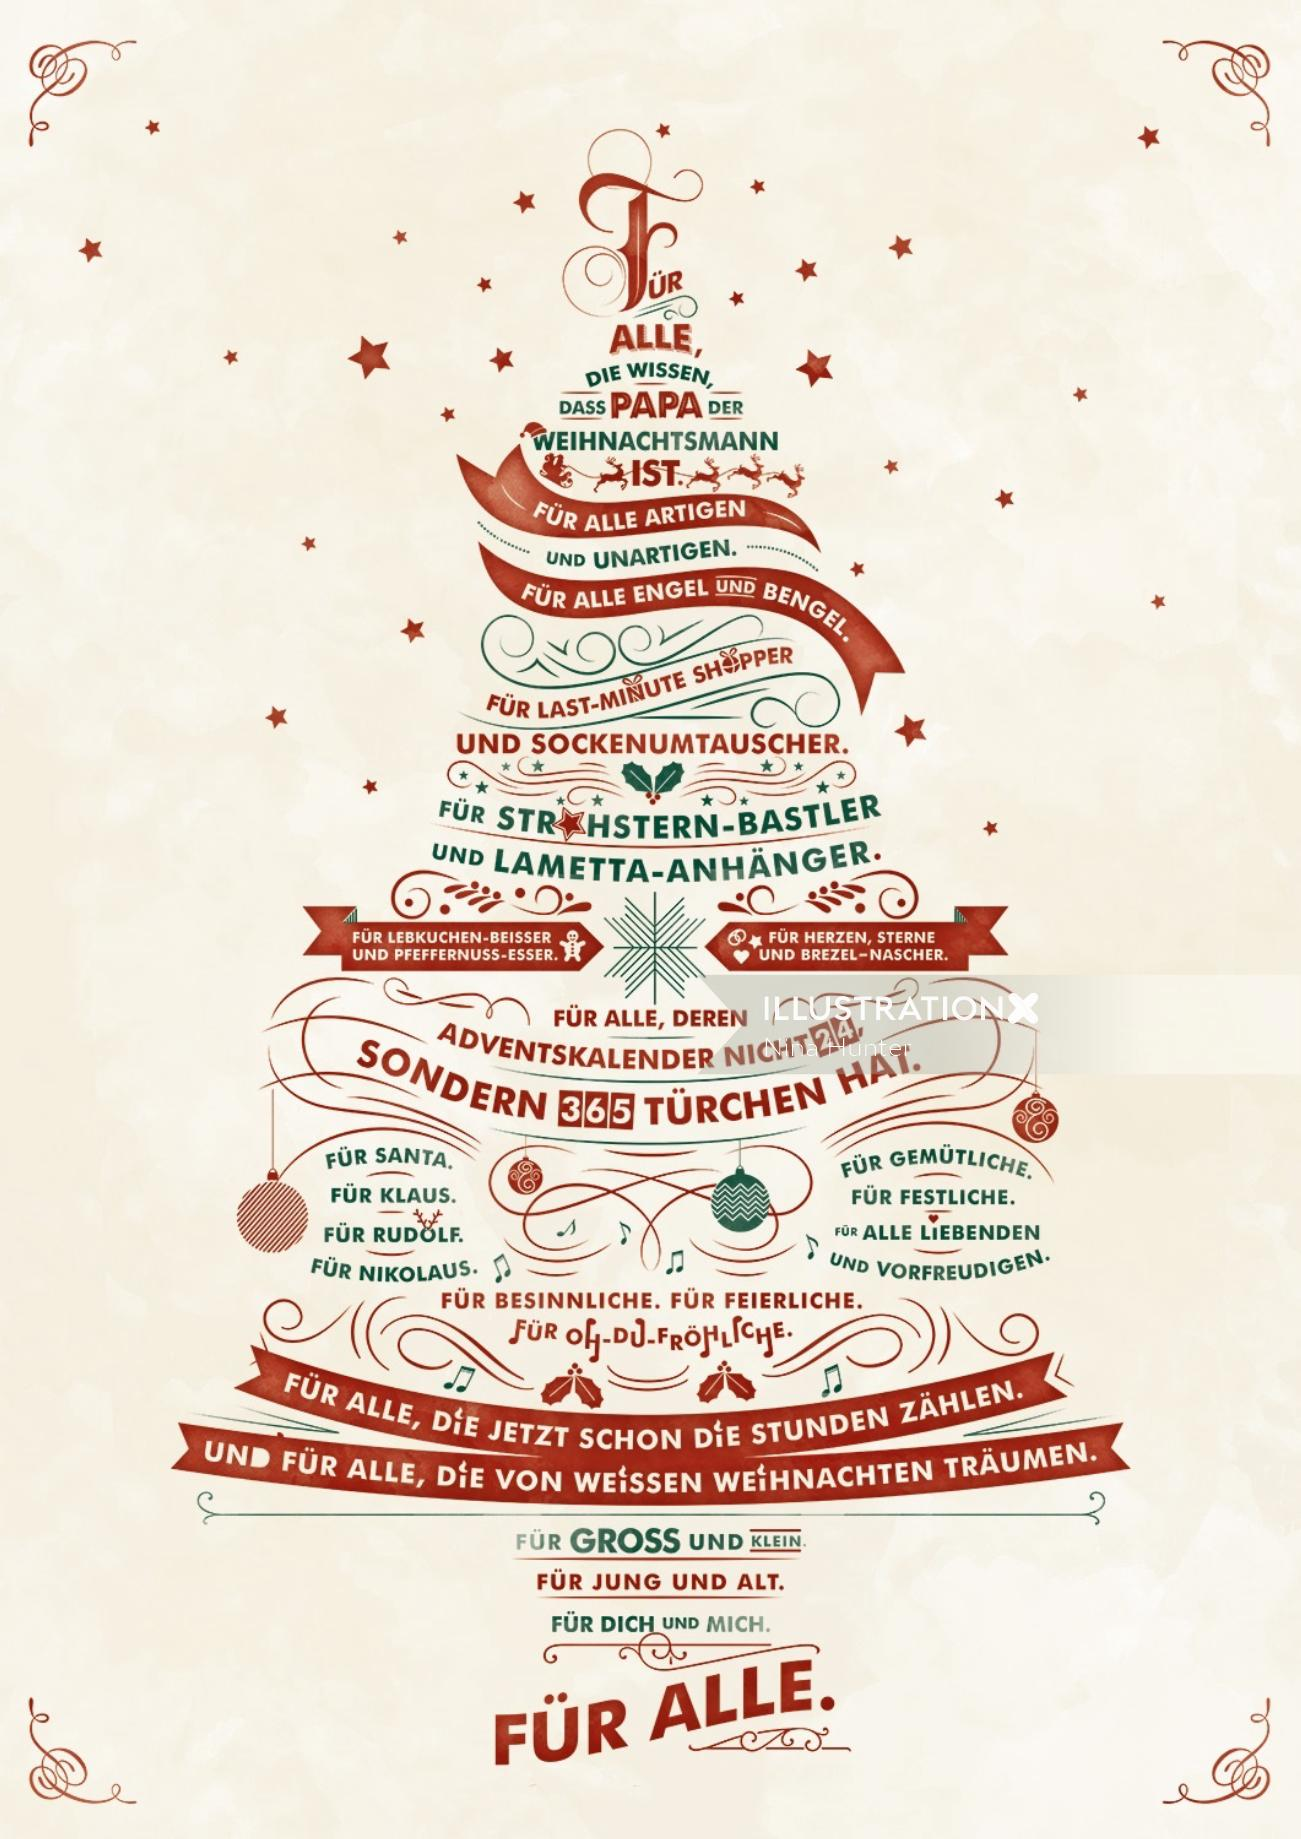 Illustration of Christmas Promotion for a Supermarket Chain